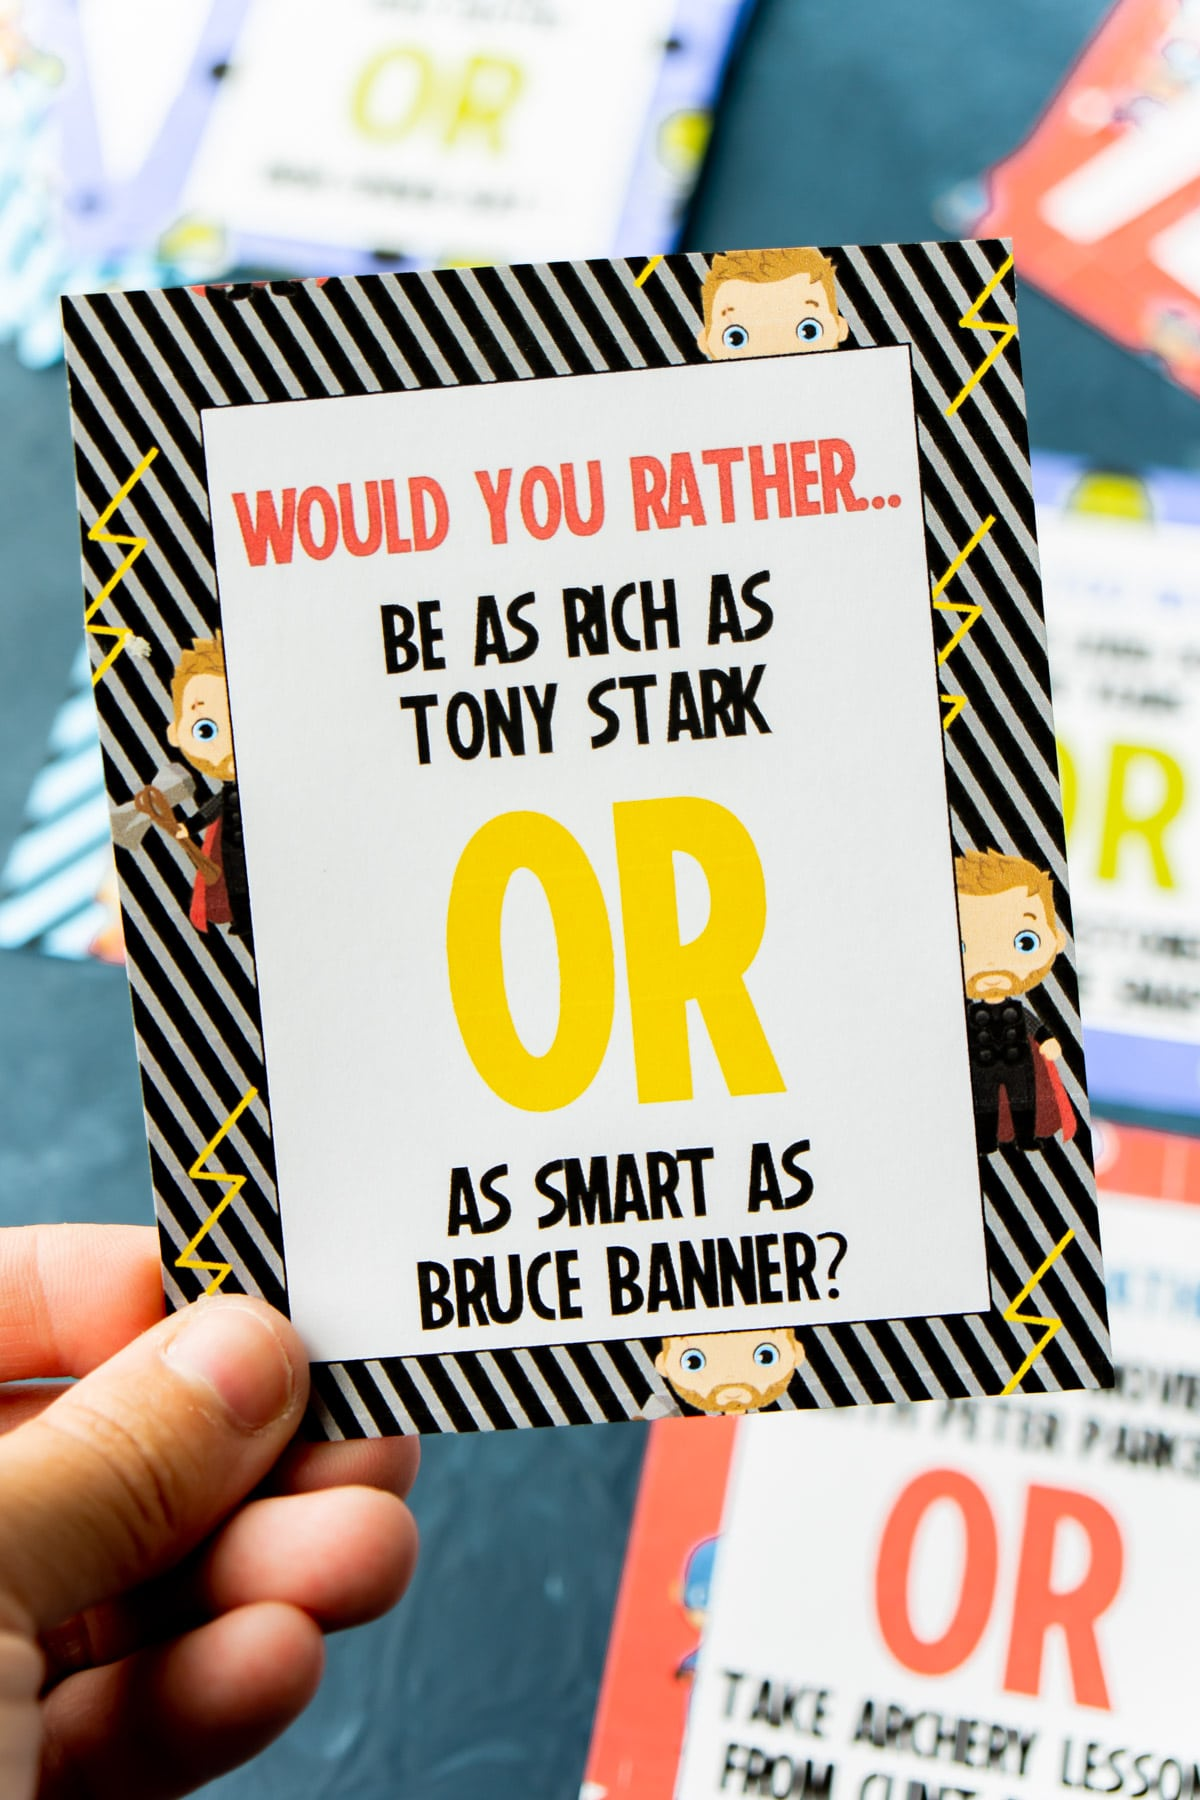 Someone holding a Marvel would you rather question card